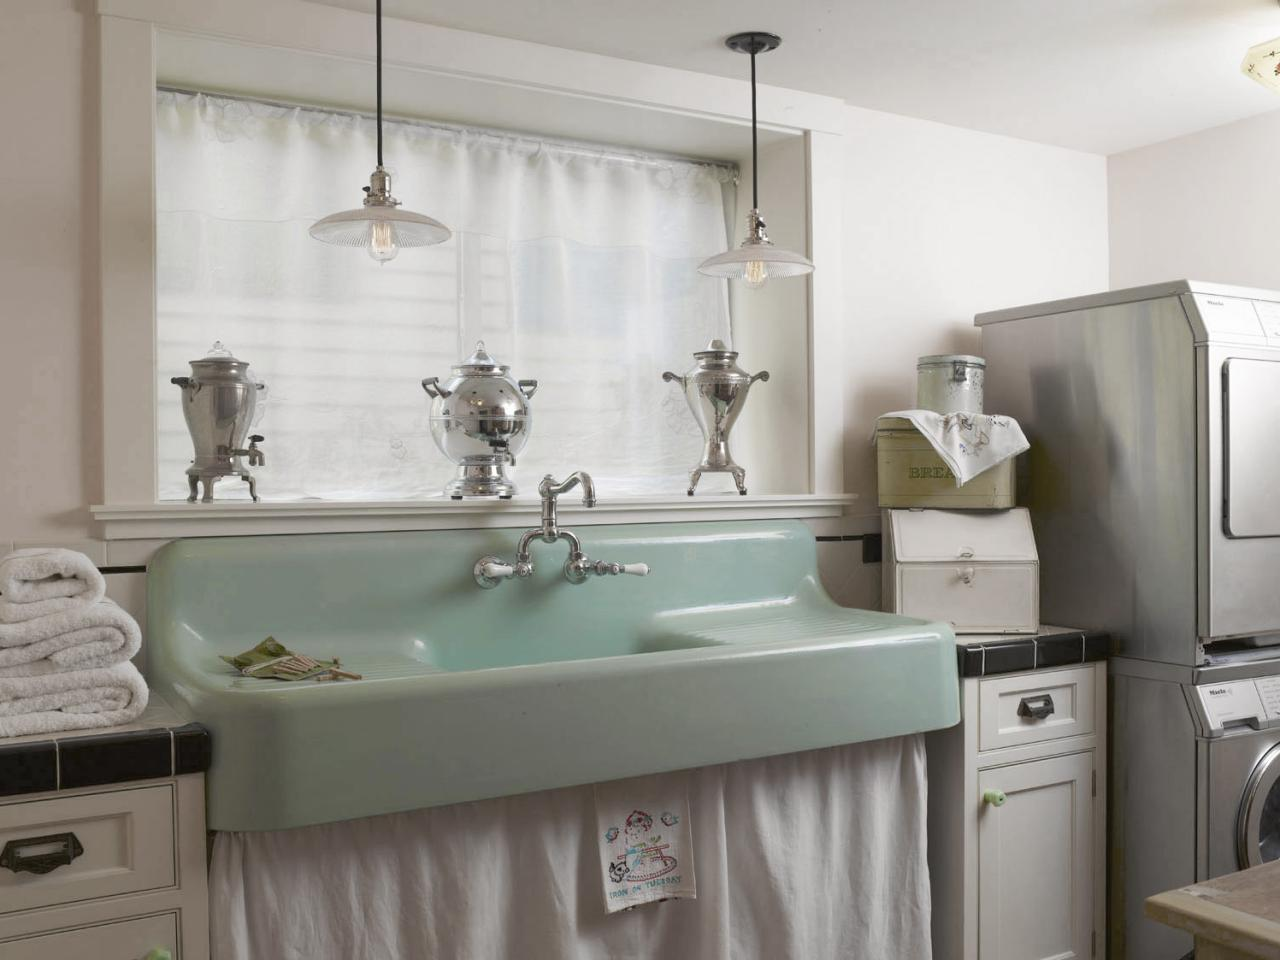 7 Stylish Laundry Room Decor Ideas Hgtv S Decorating